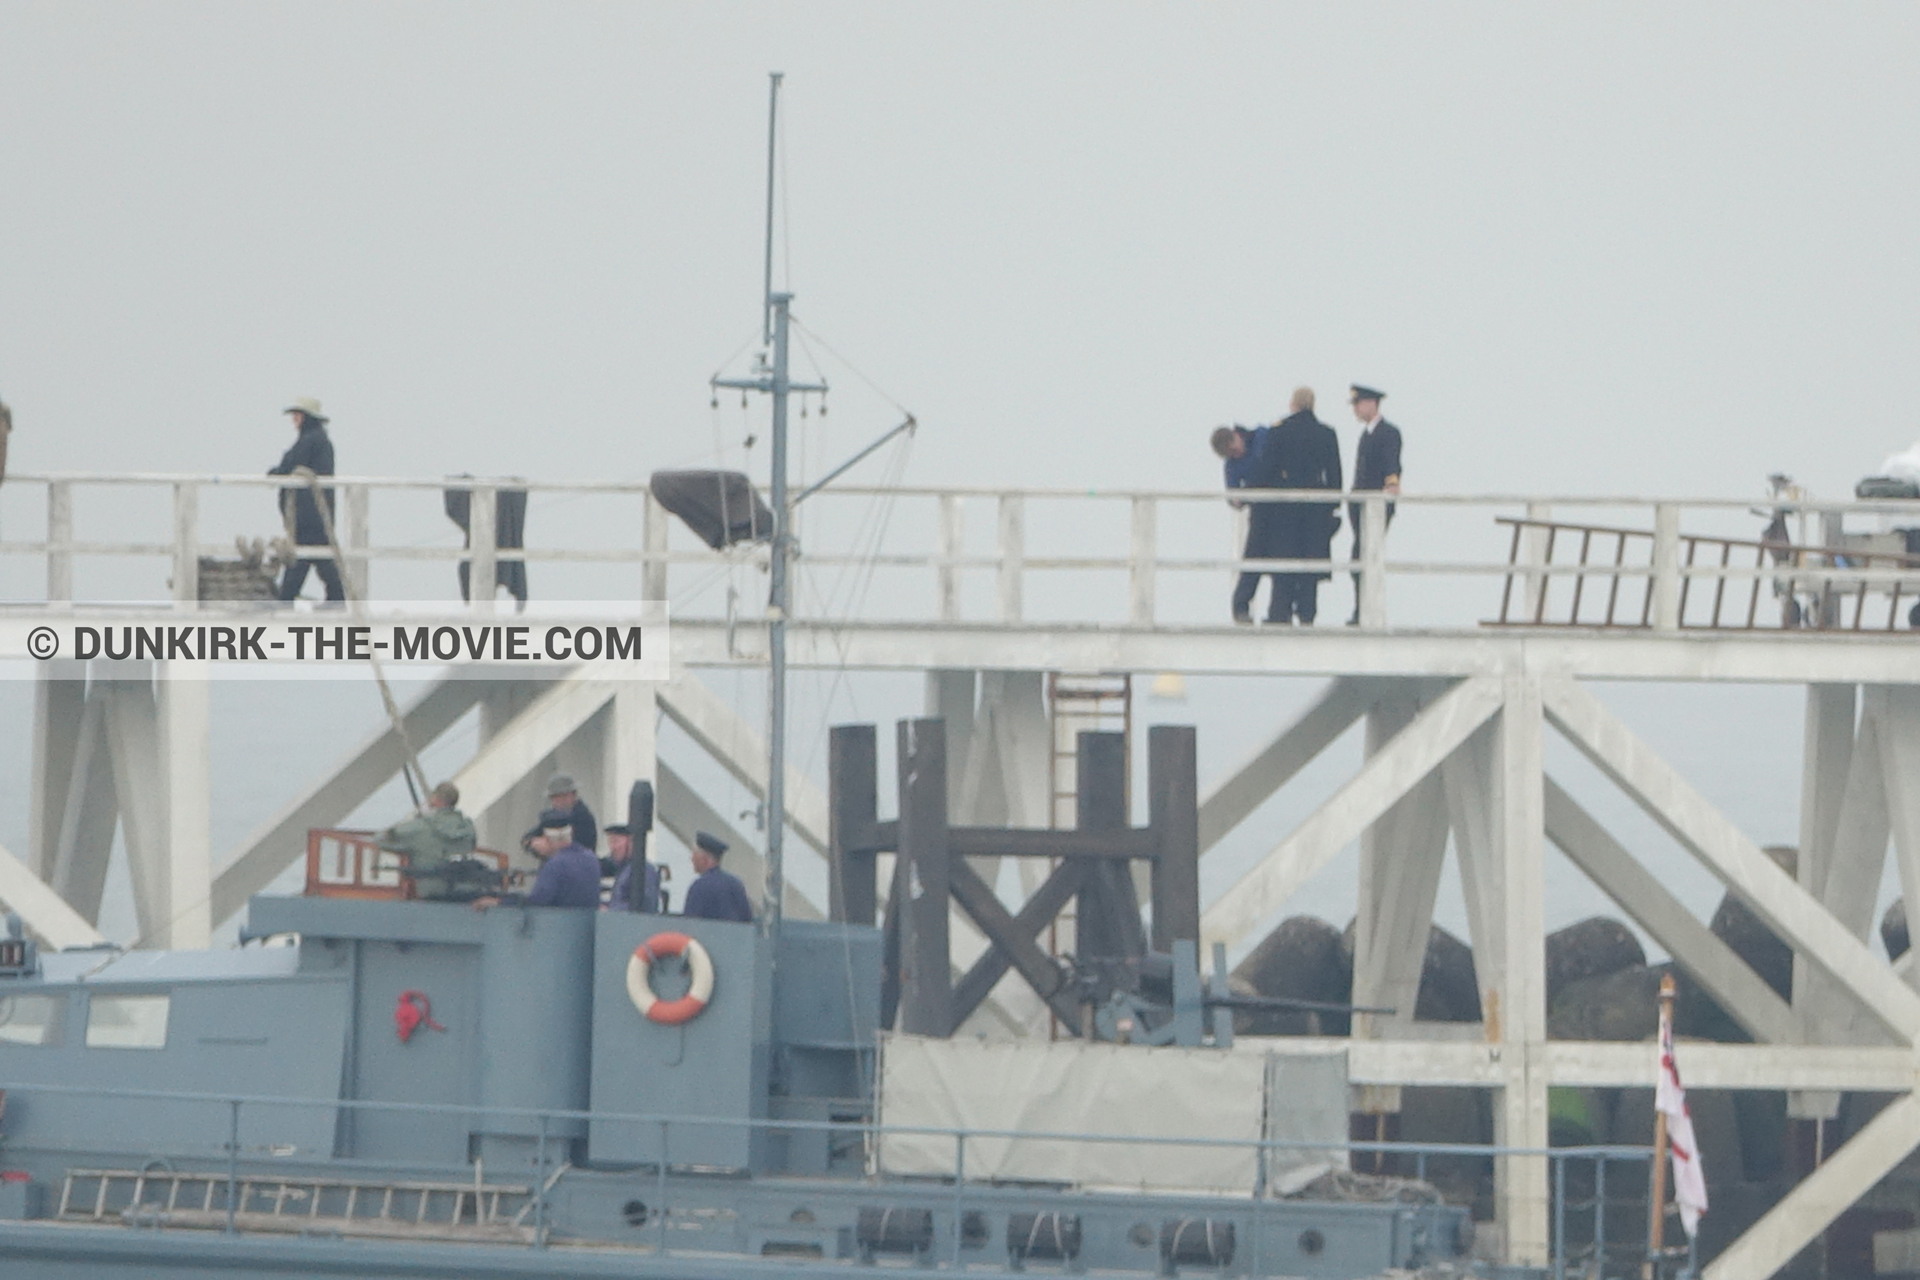 Picture with grey sky, supernumeraries, HMS Medusa - ML1387, EST pier, Kenneth Branagh, technical team,  from behind the scene of the Dunkirk movie by Nolan